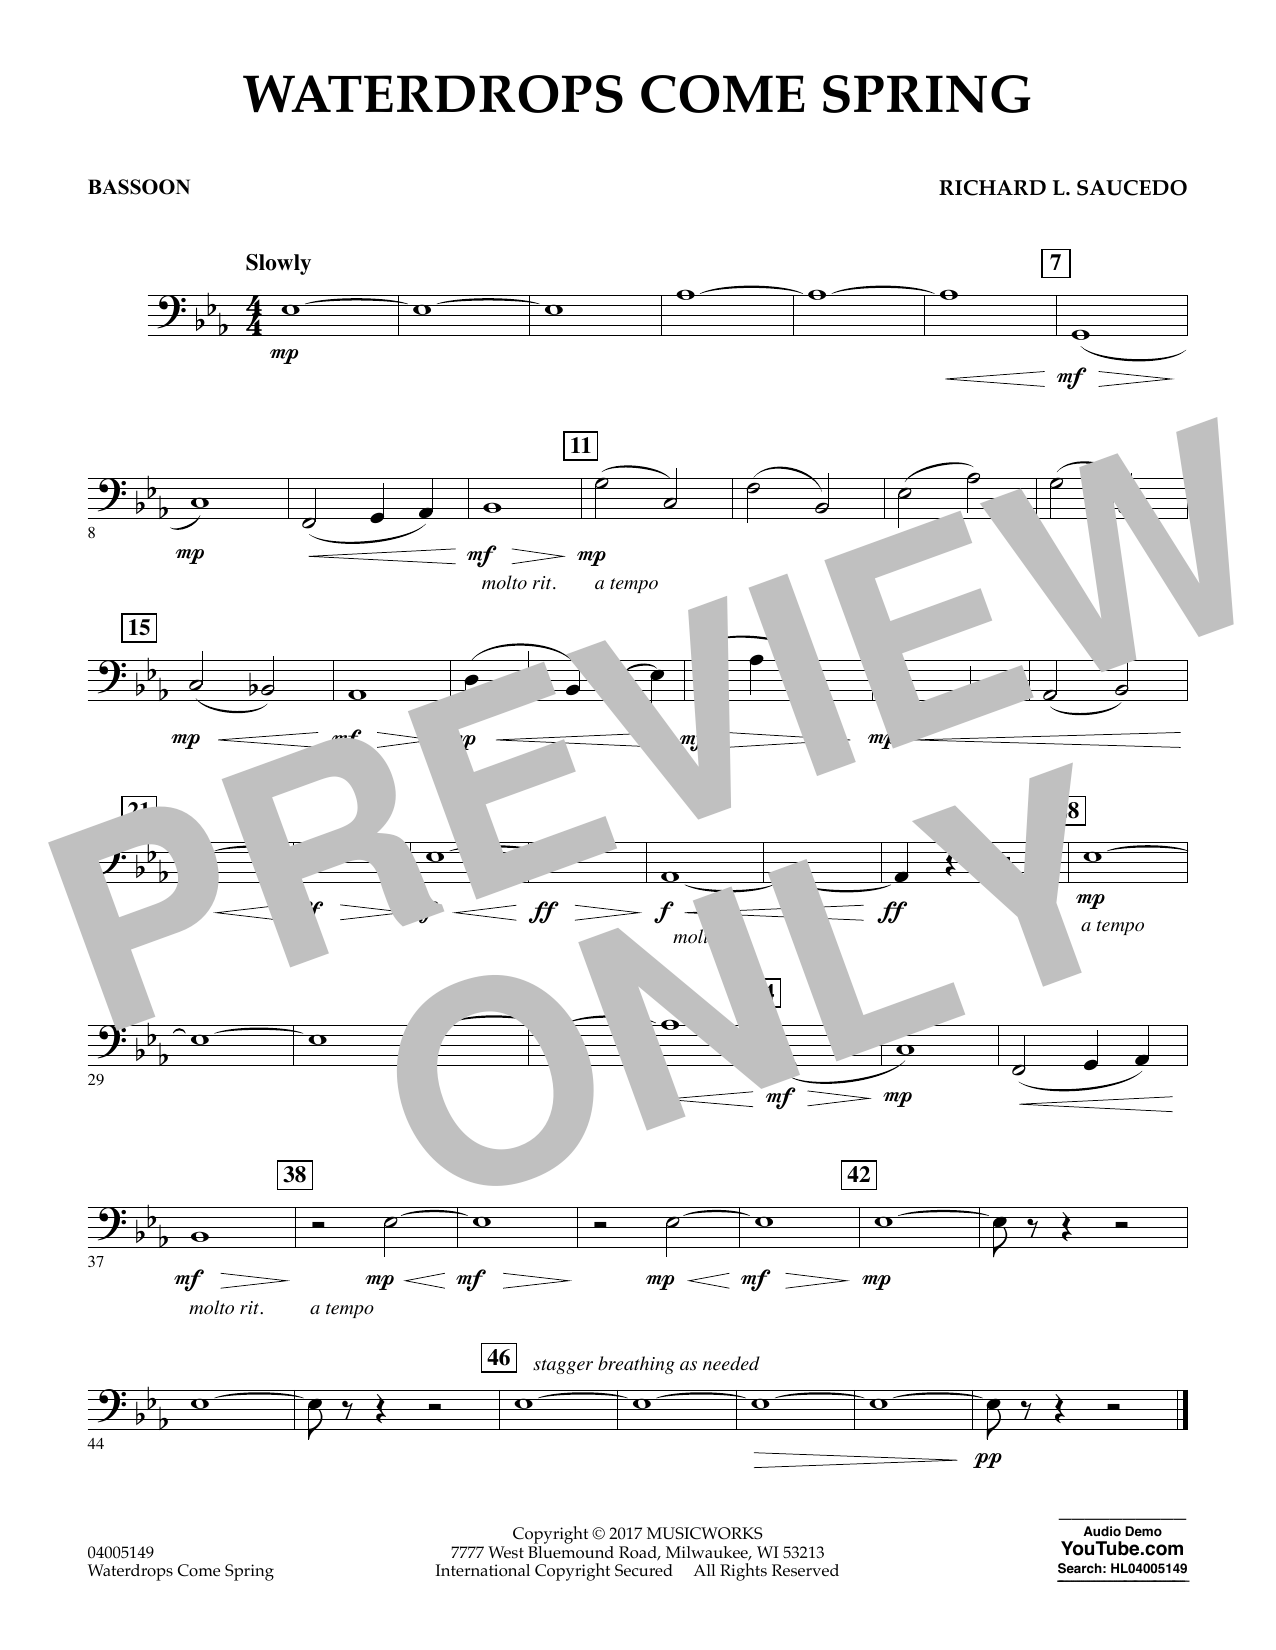 Richard L. Saucedo Waterdrops Come Spring - Bassoon sheet music notes and chords. Download Printable PDF.